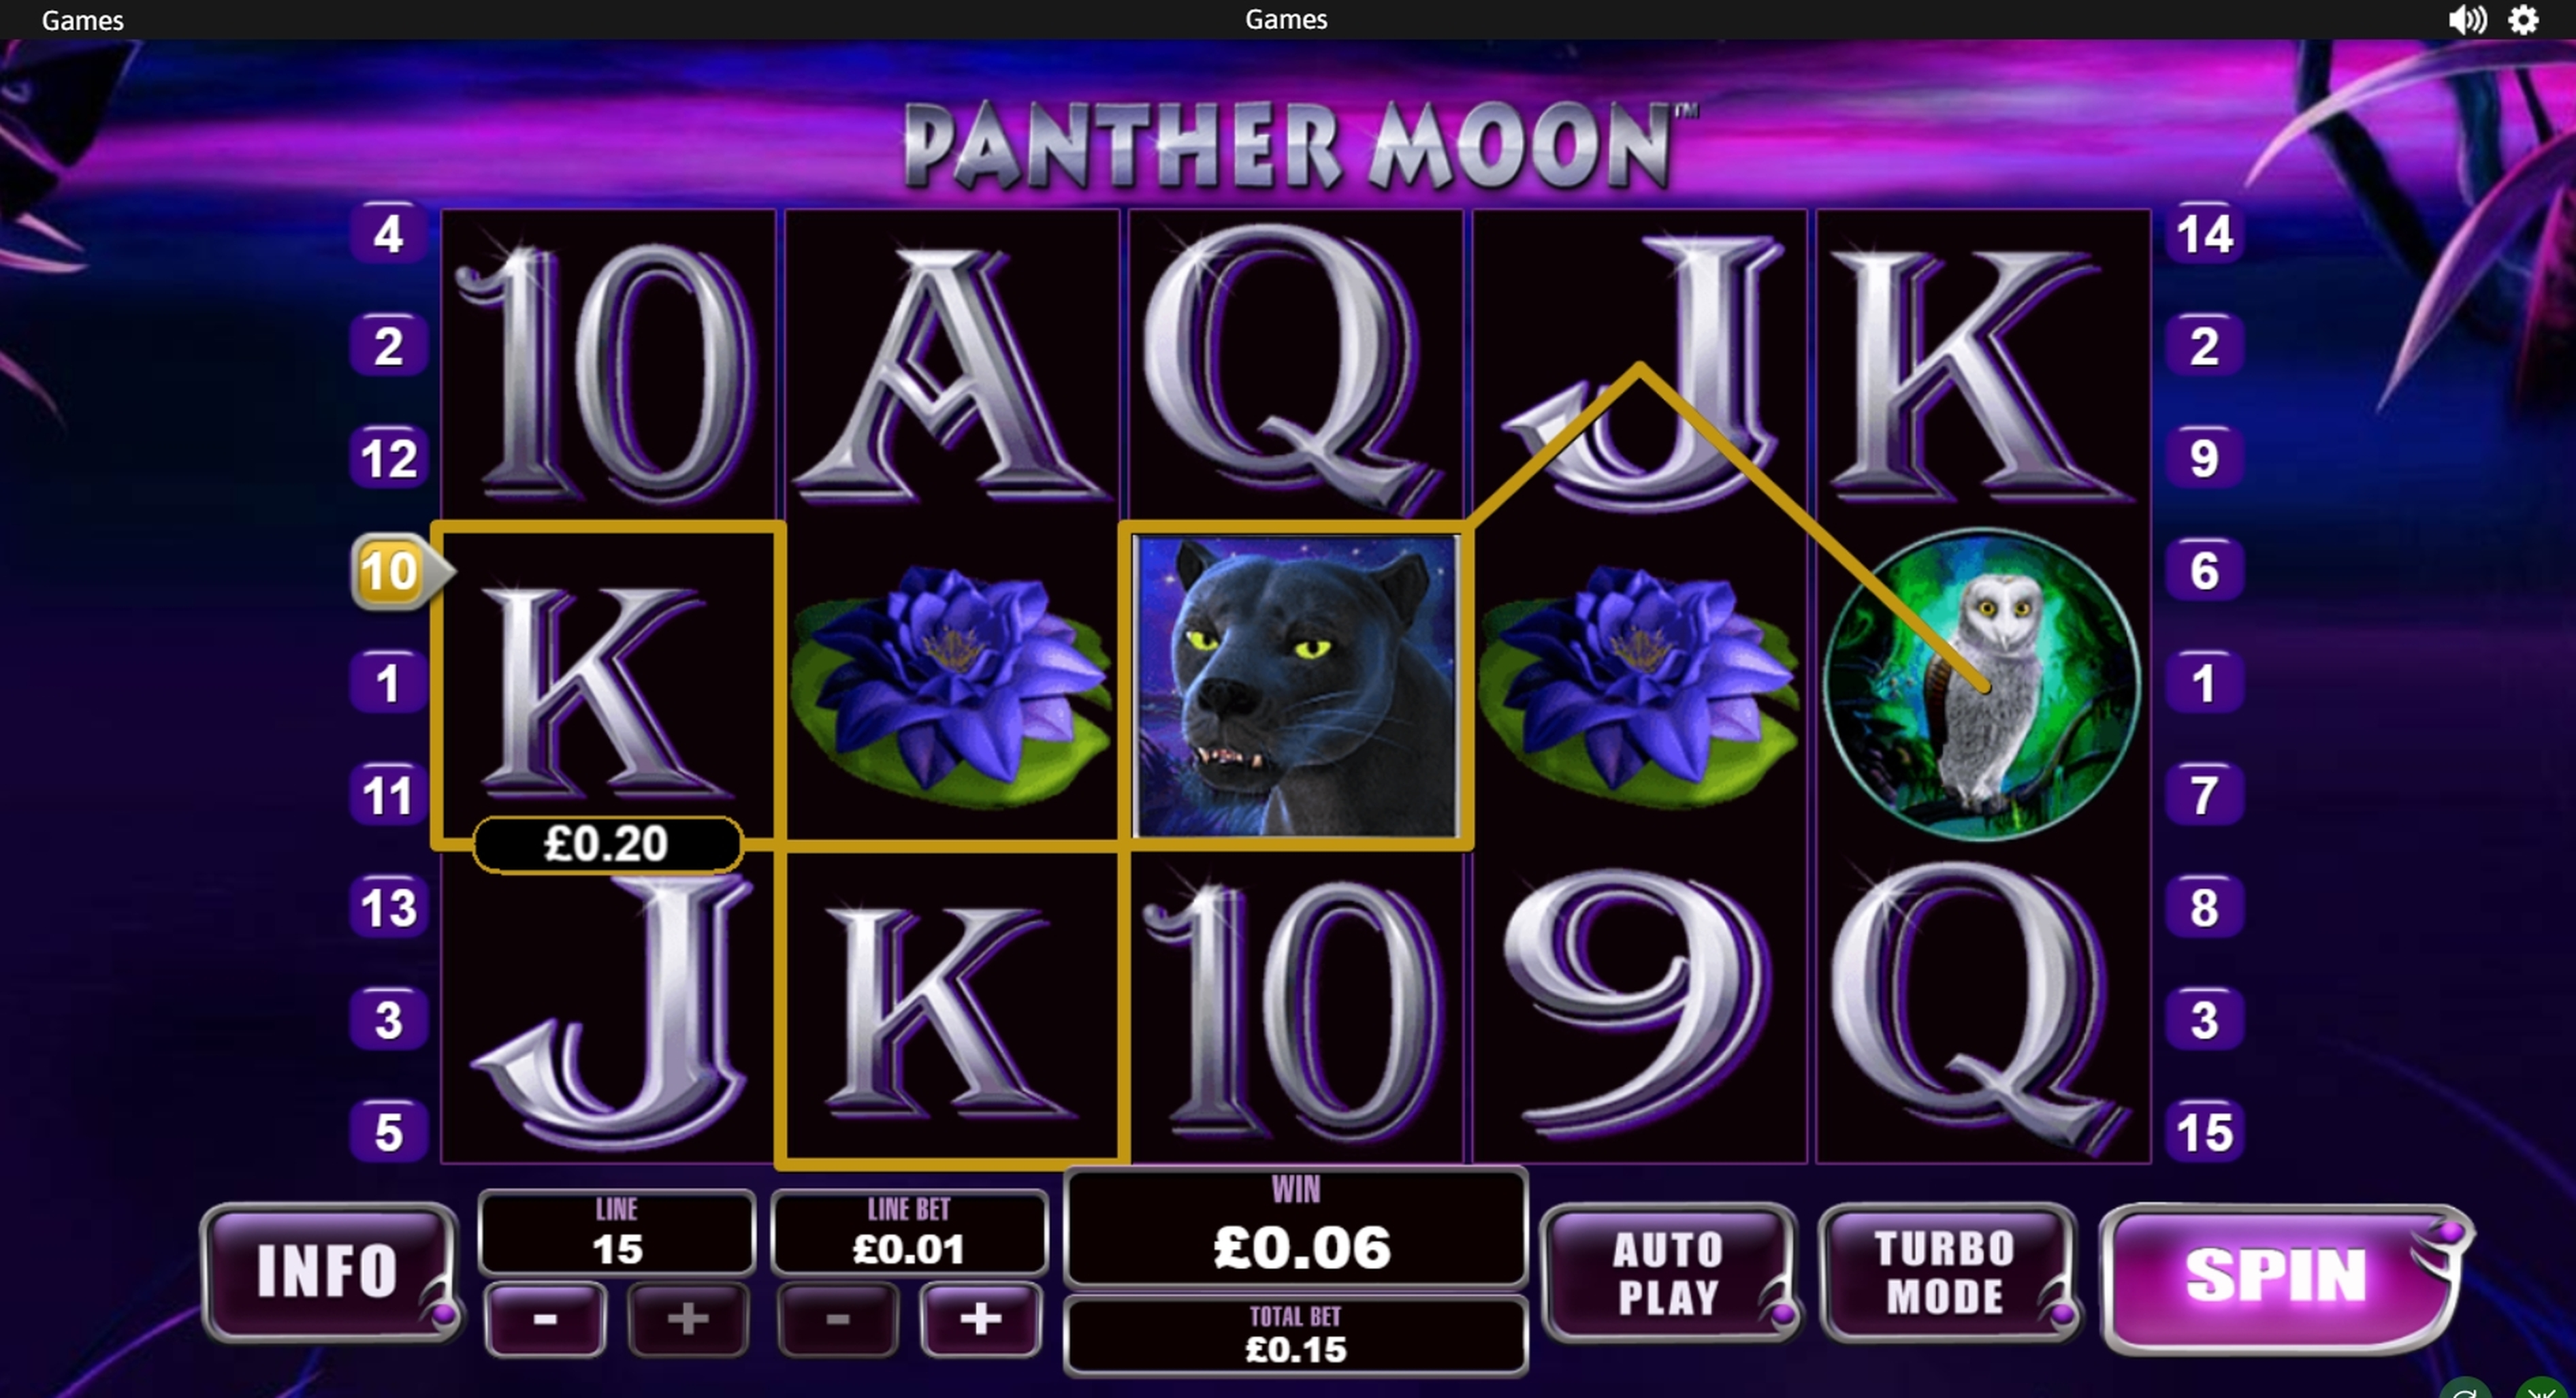 Win Money in Panther Moon Free Slot Game by Playtech